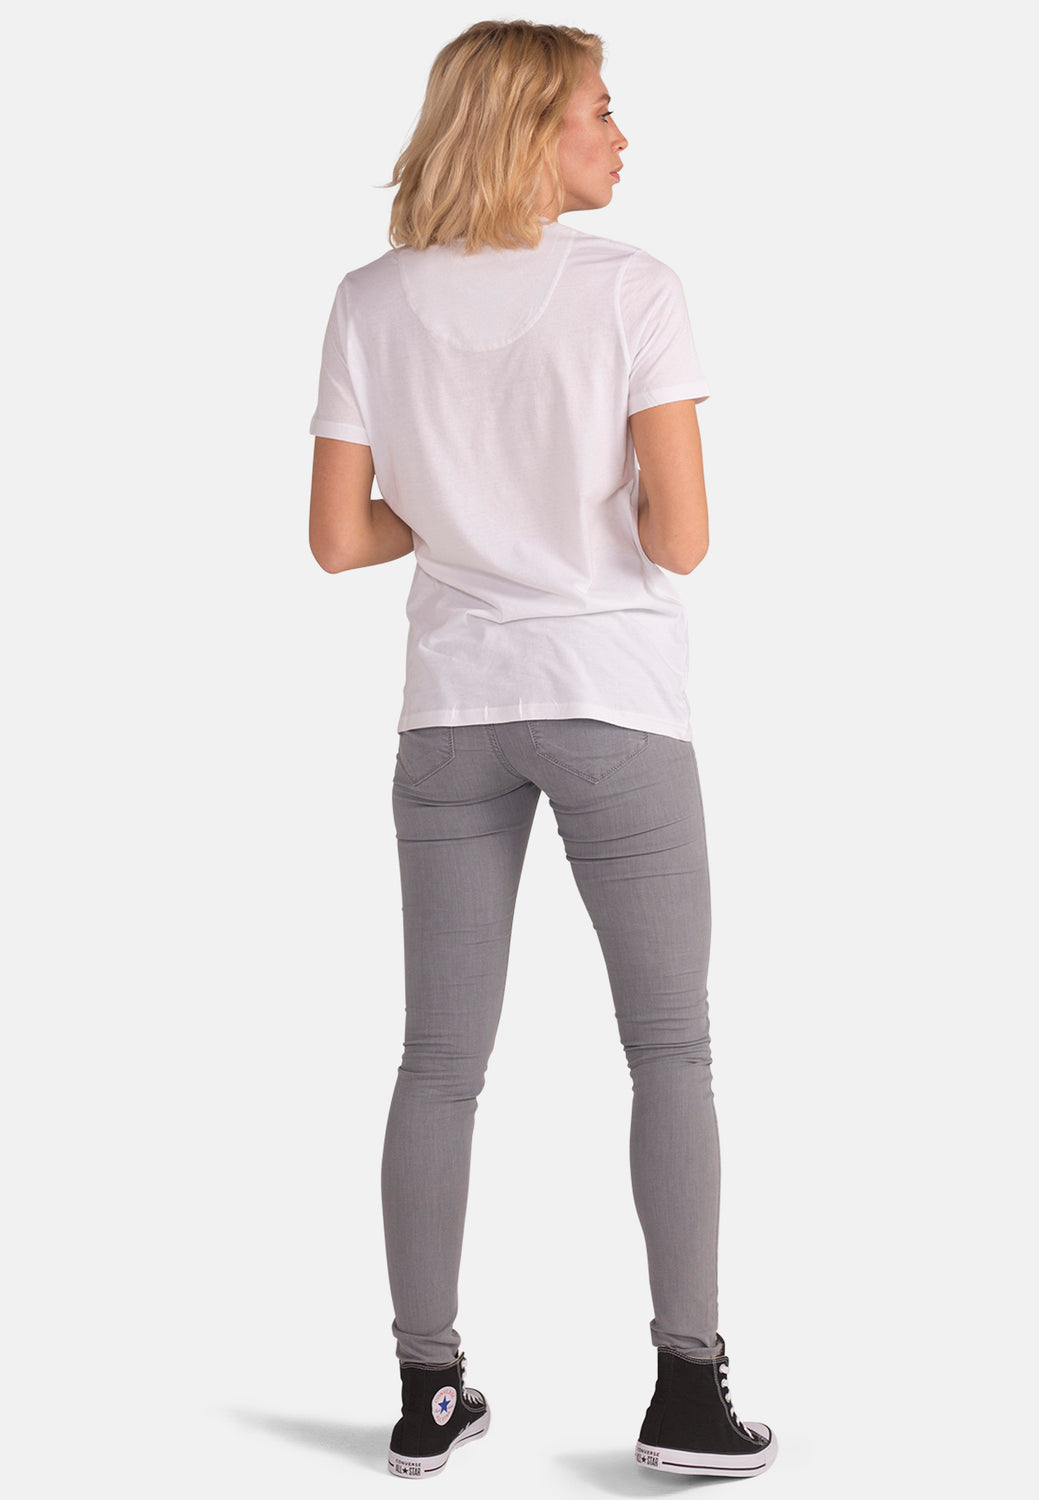 Women's Organic Cotton Mantra Tee in White - Monkee Genes Organic Jeans Denim - Women's T-Shirts Monkee Genes Official  Monkee Genes Official